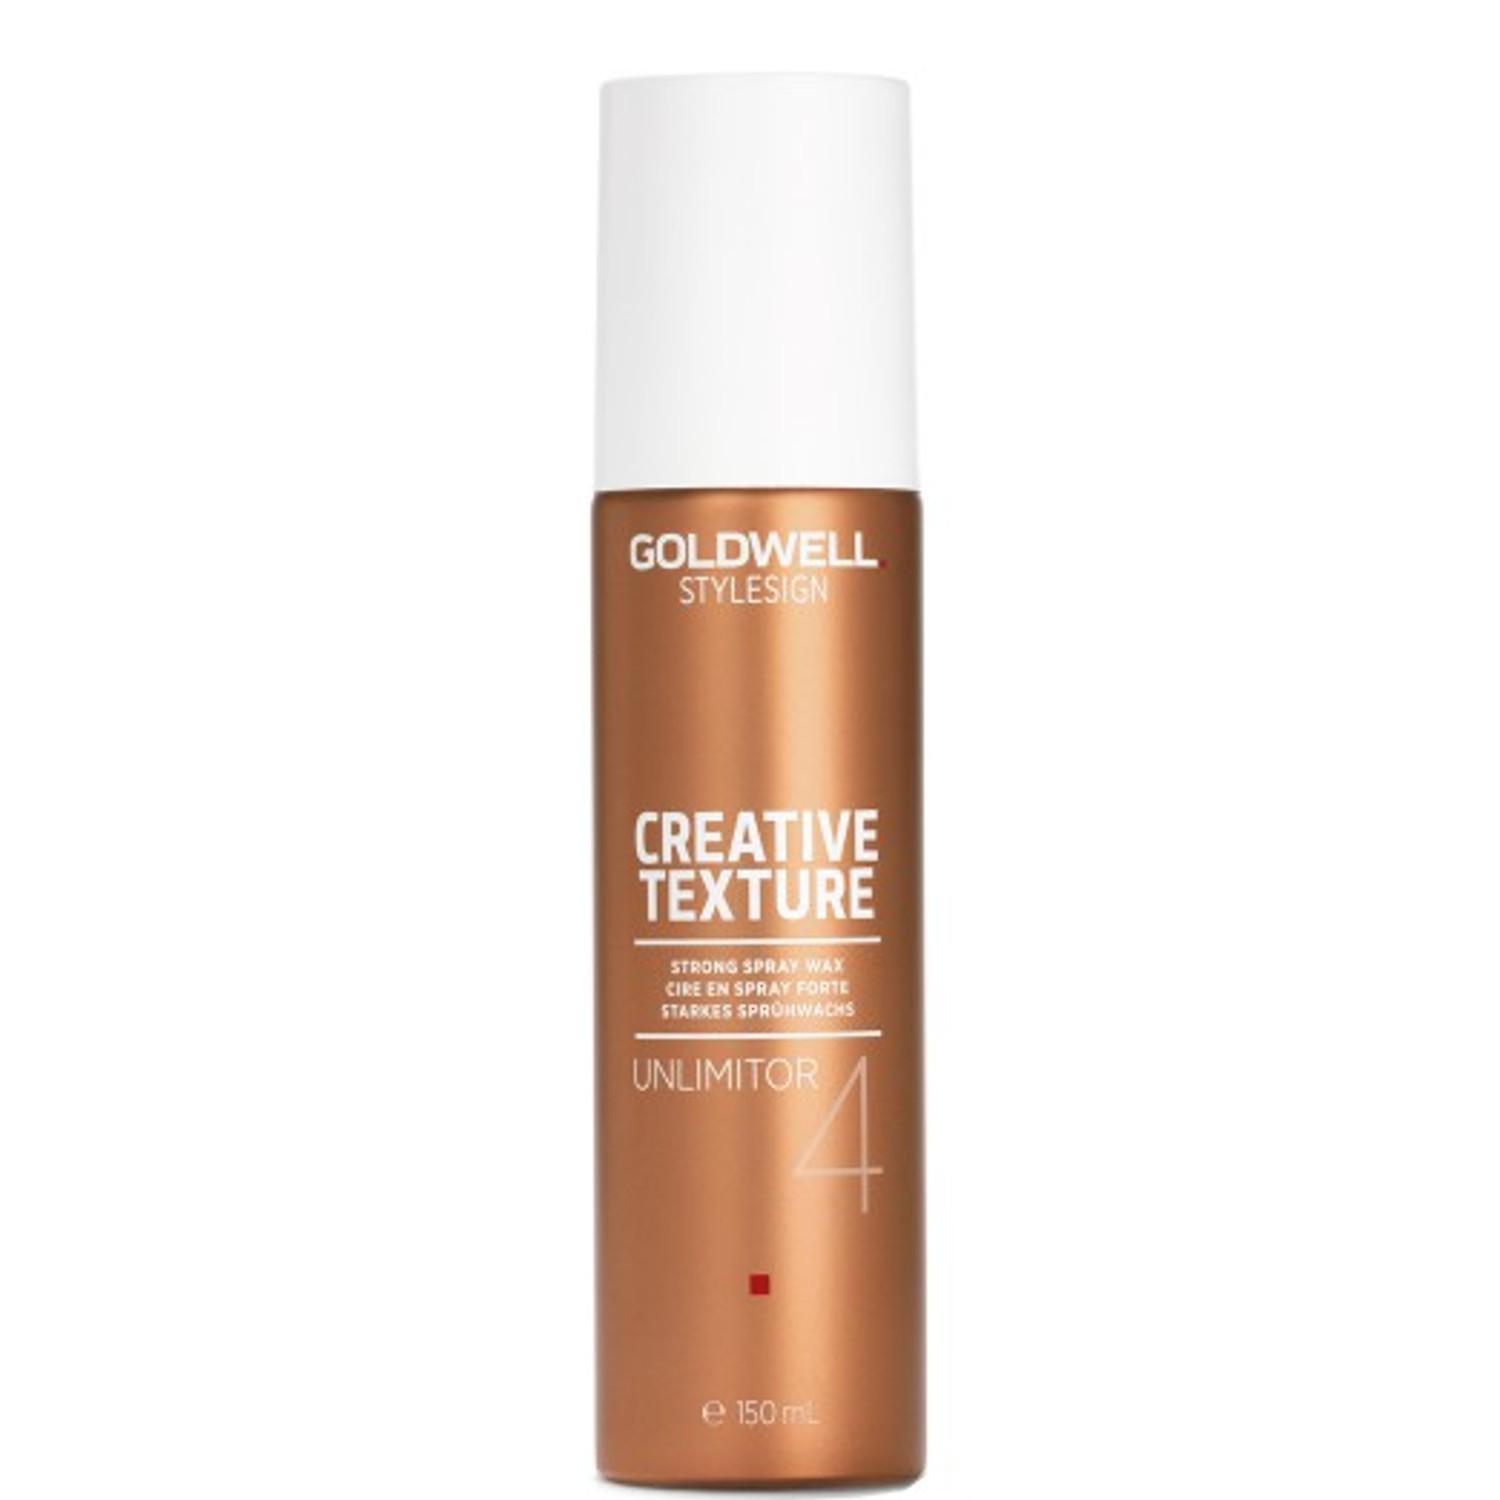 GOLDWELL Style Sign Creative Texture UNLIMITOR 150 ml